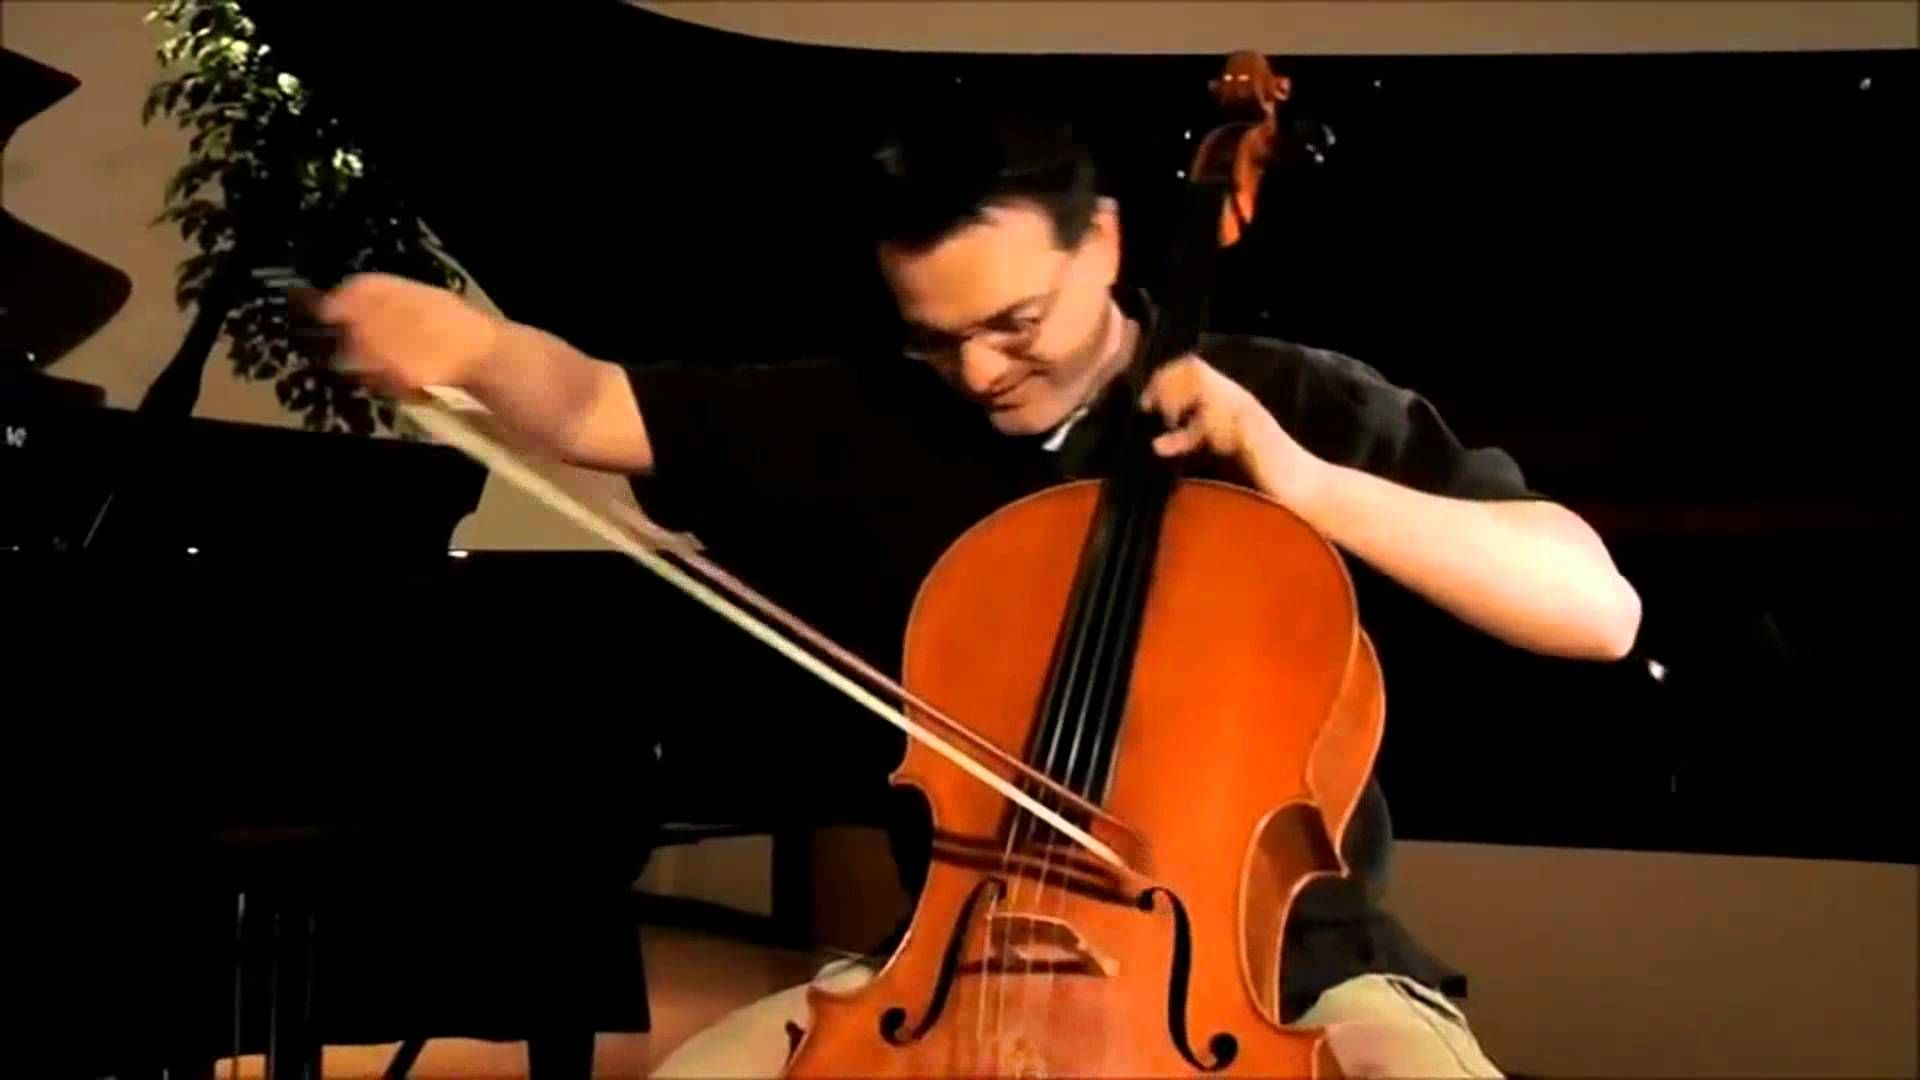 The Piano Guys Love Story Taylor Swift That Moment When An Instrumental Cover Is Way Better Than Original